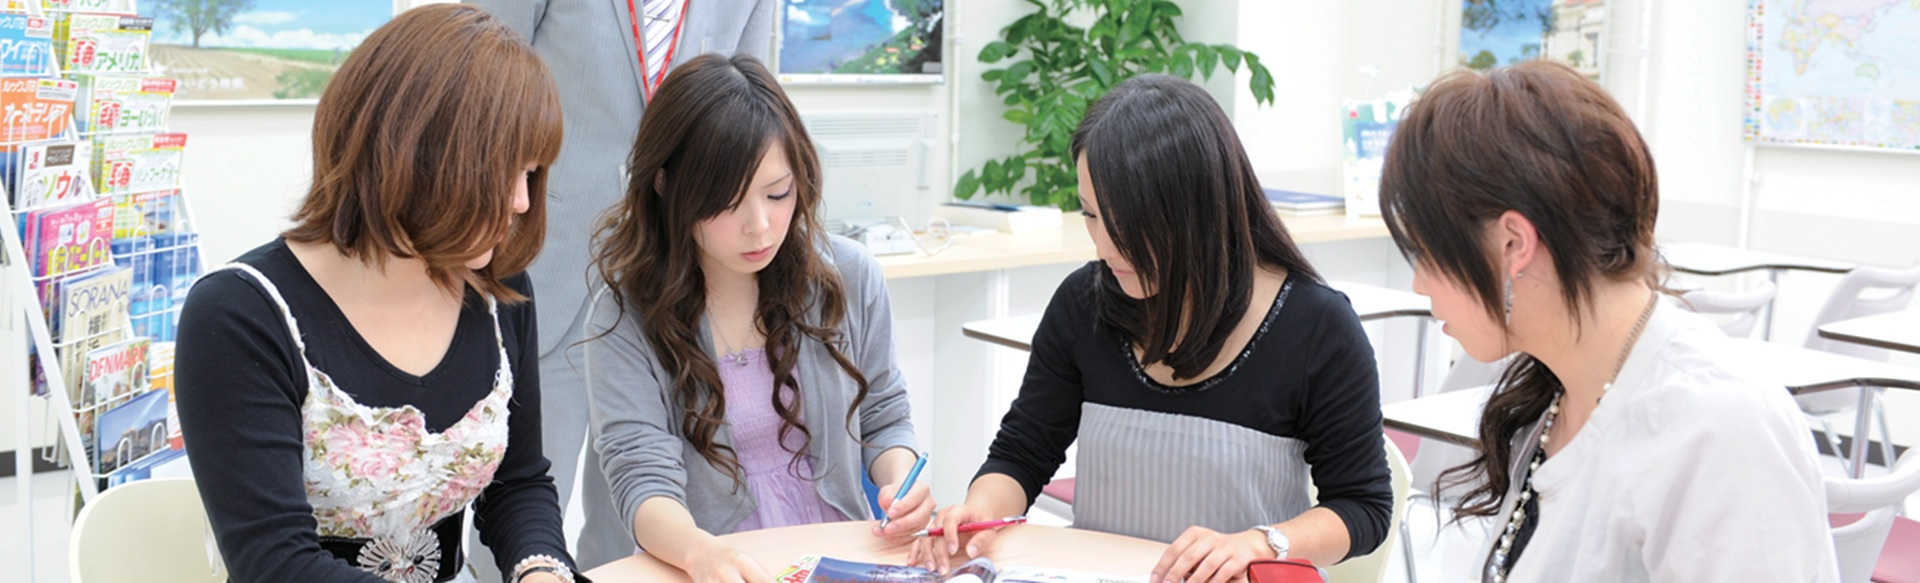 ENABLING YOU TO STUDY IN JAPAN